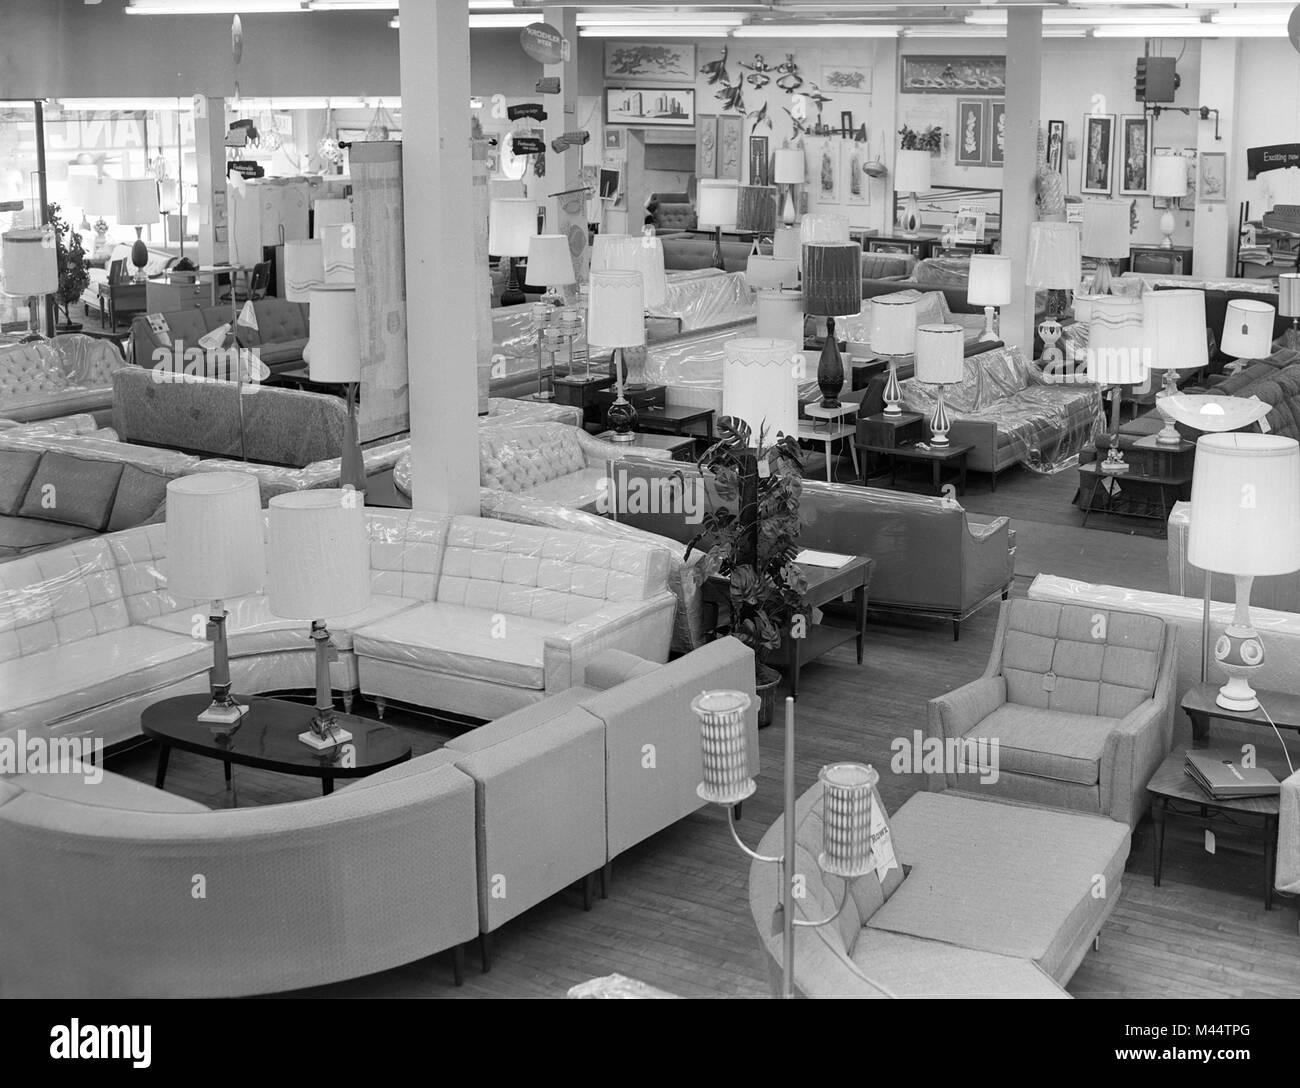 Furniture store in Chicago is crowded with sofas and lamps for mid-century homebuyers, ca. 1956. - Stock Image